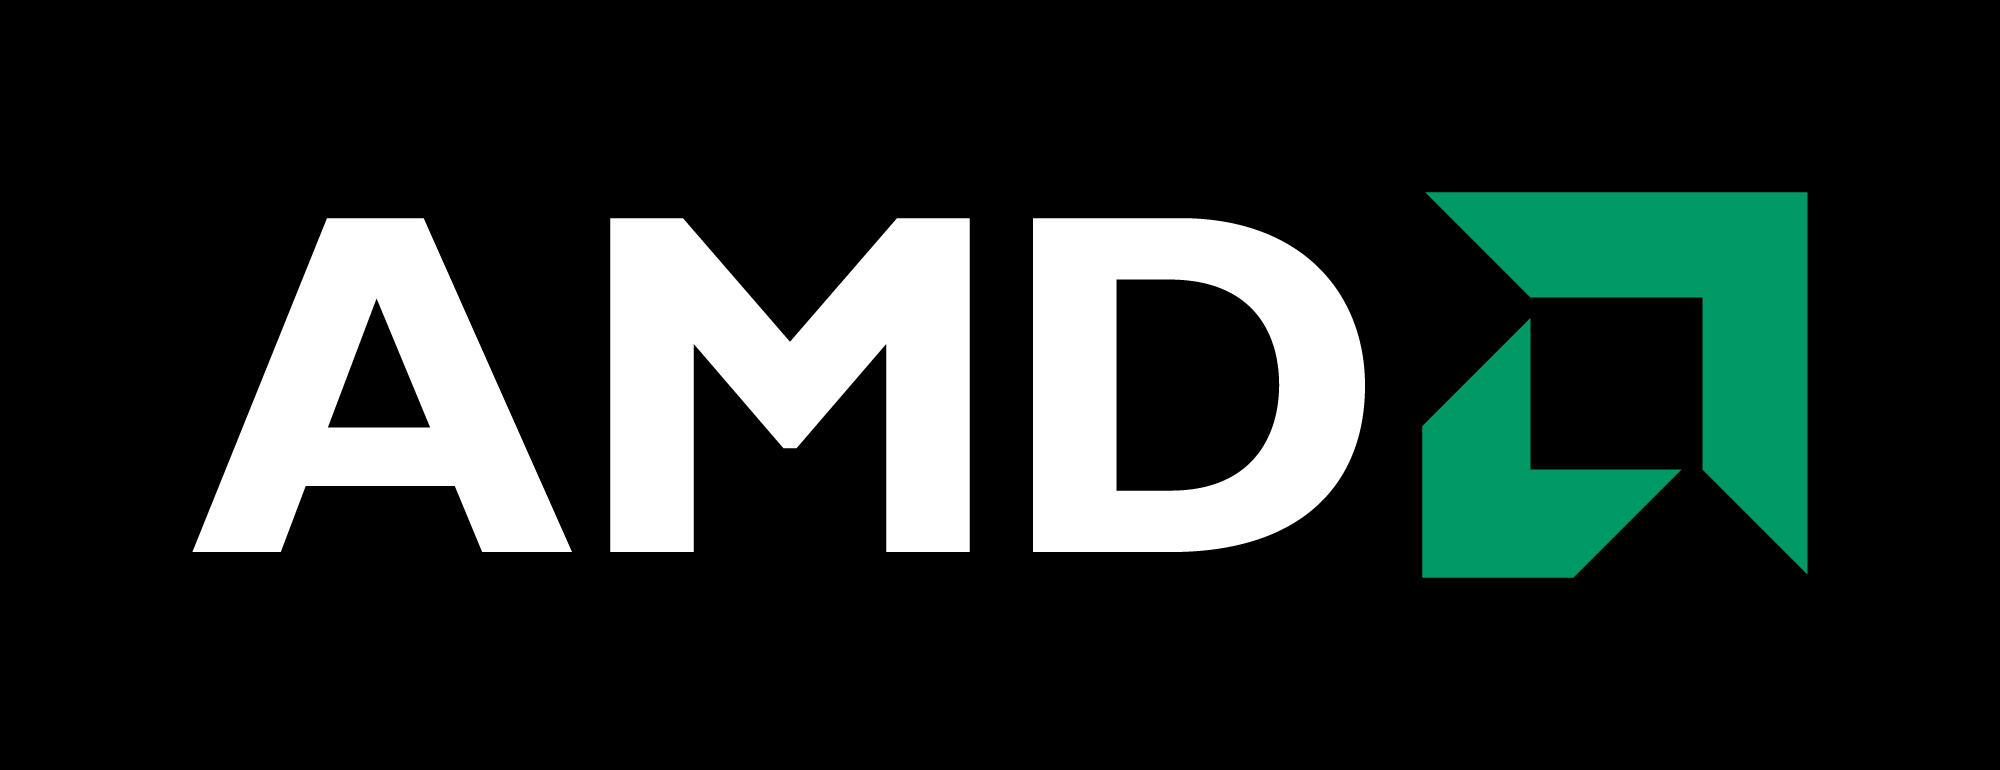 ASIC Clouds, Dark Silicon, Tiled Processors ...  |Amd